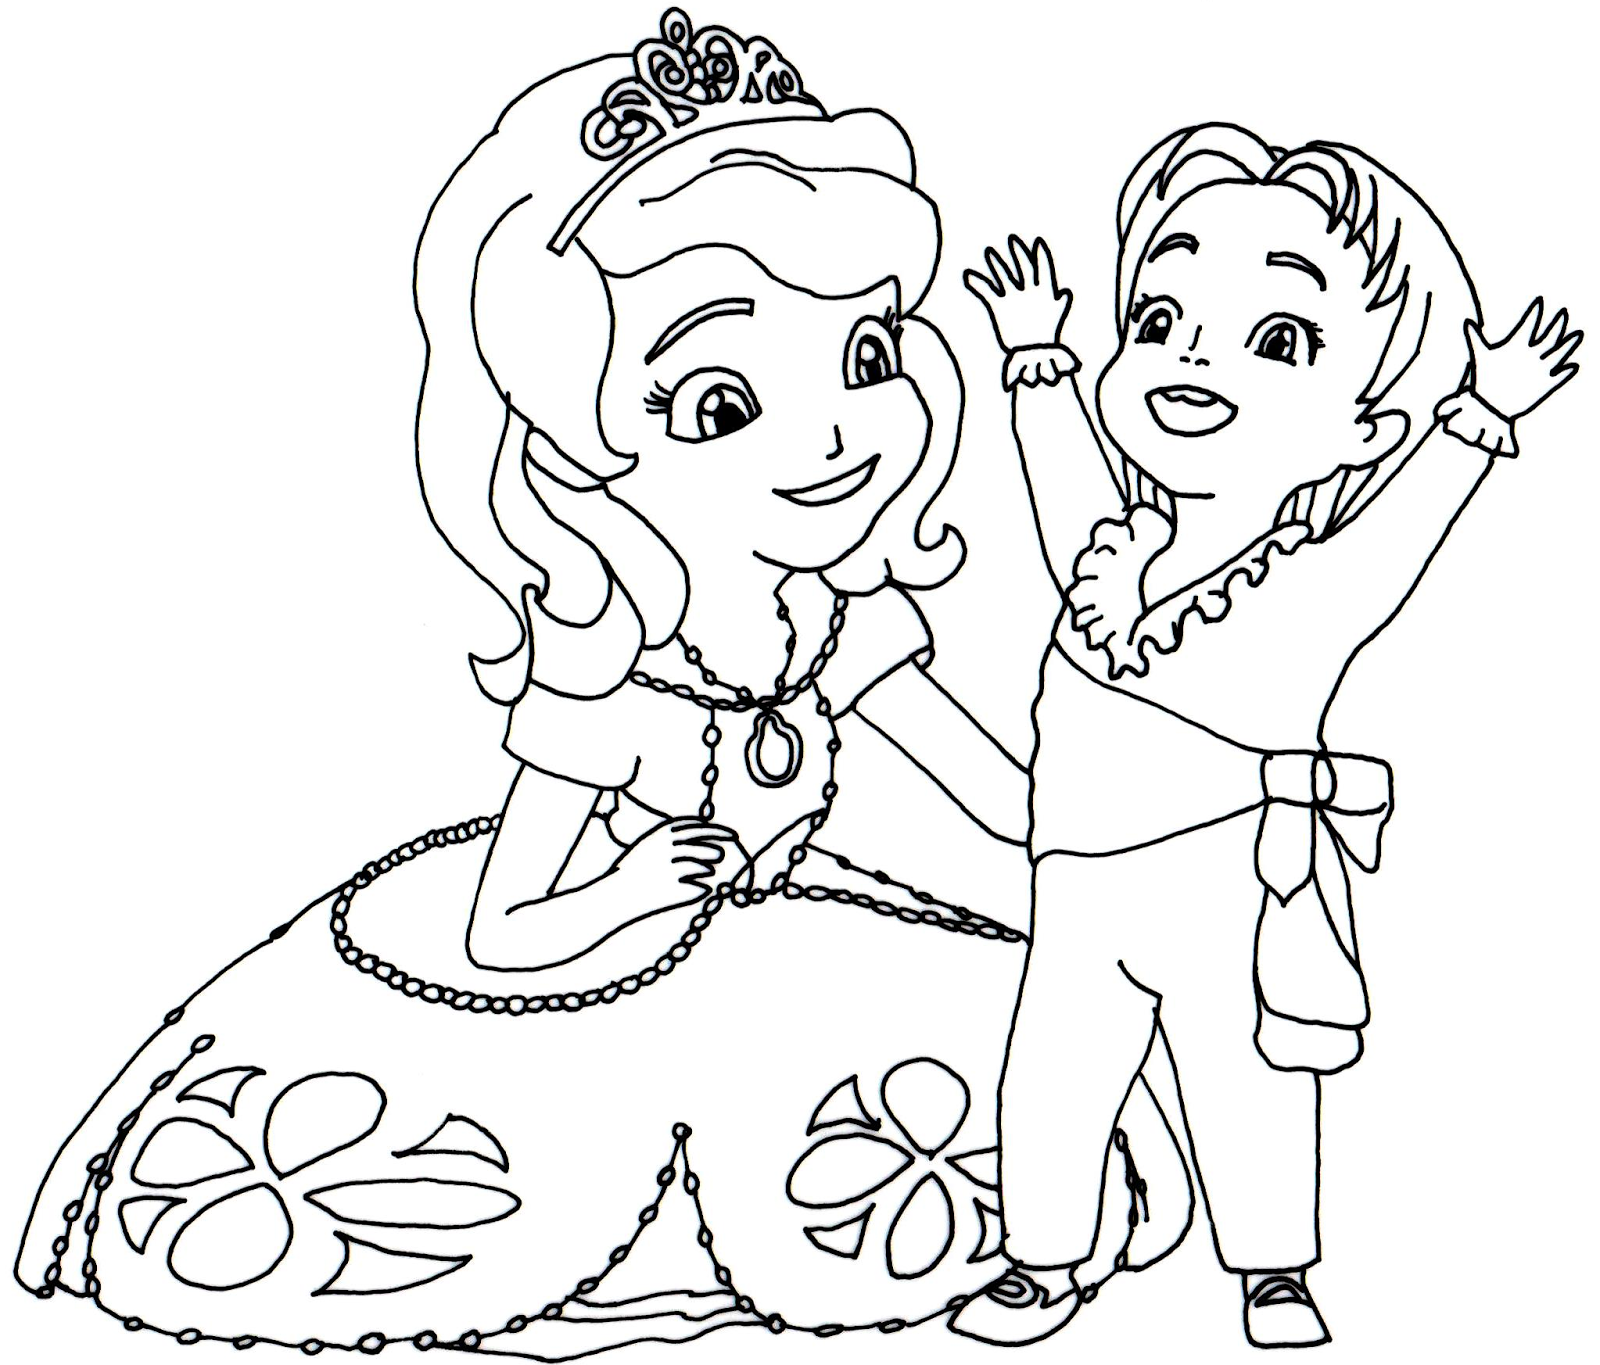 Sofia The First Coloring Pages Printable Images Of Princess Sofia Printable